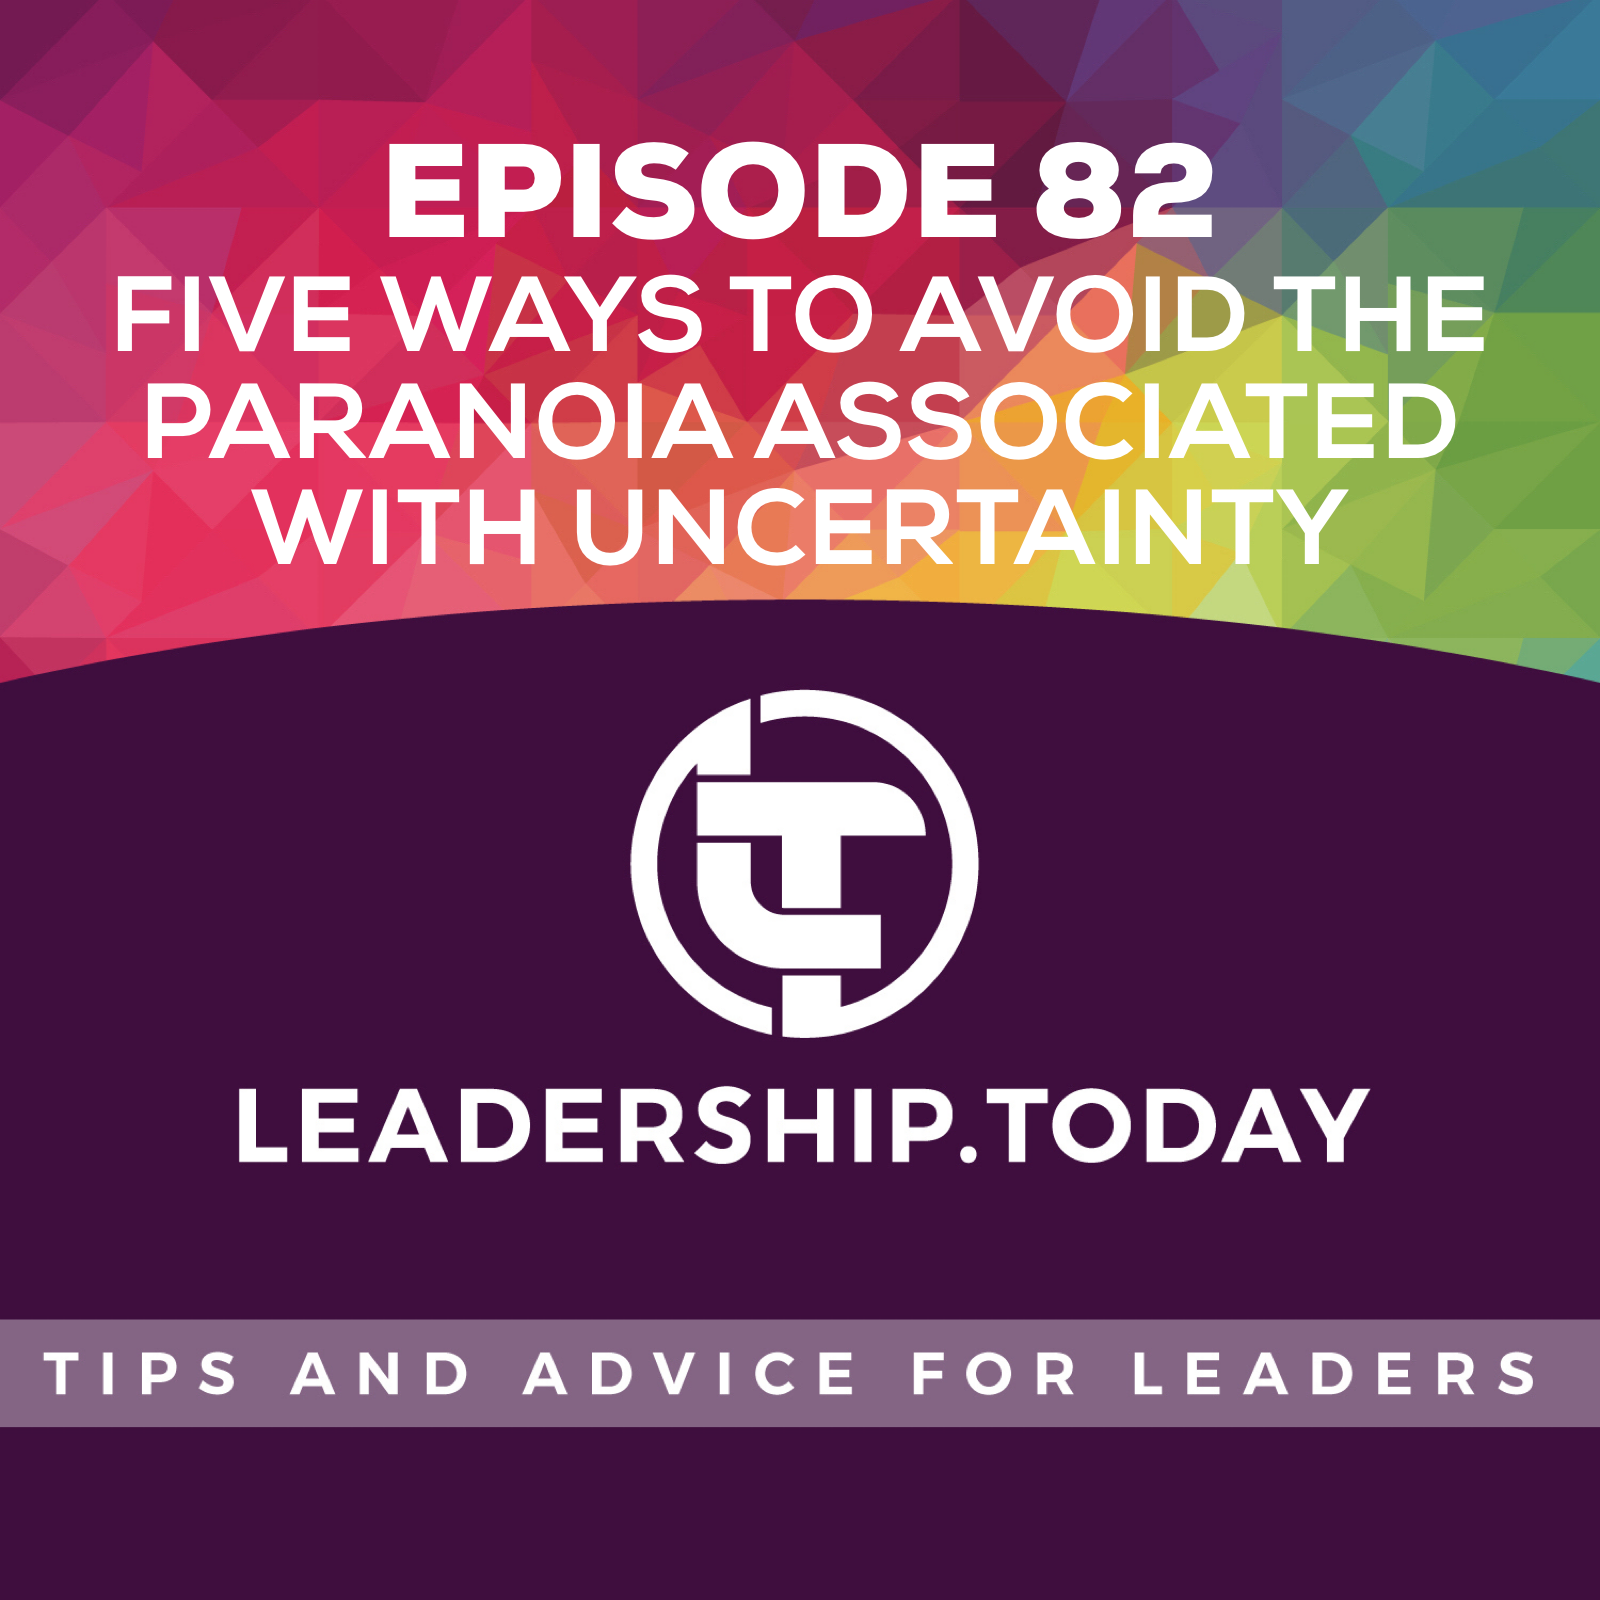 Episode 82 - Five Ways to Avoid the Paranoia Associated with Uncertainty